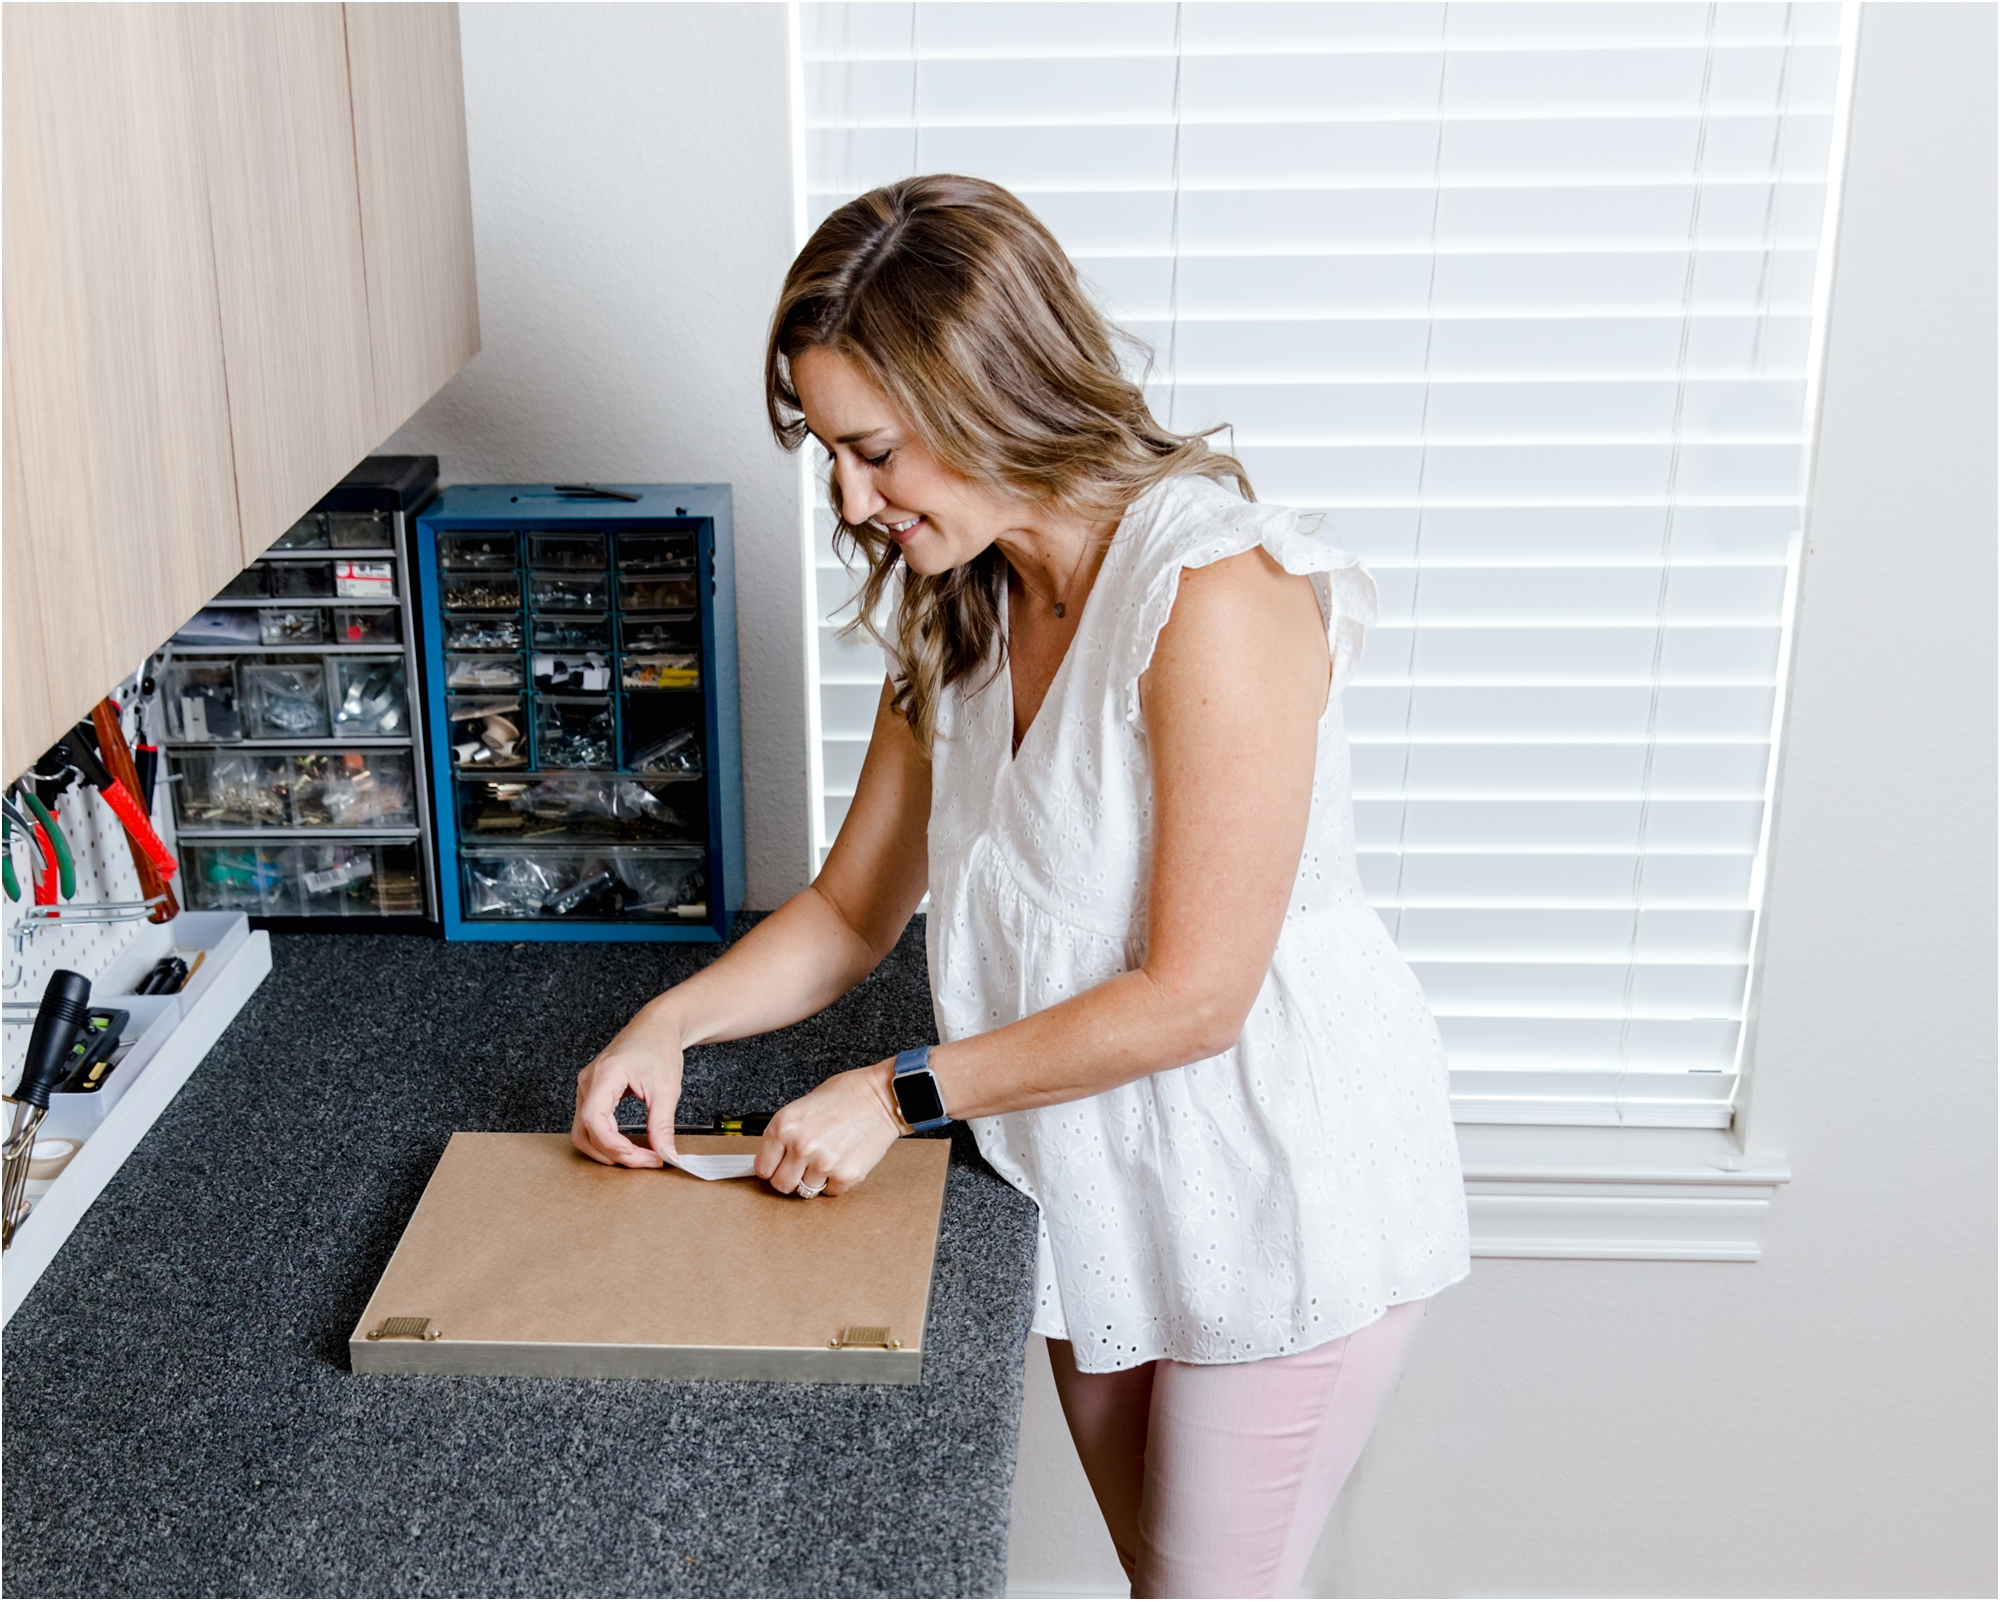 Kelly putting final touches on custom framed portrait in her Katy, TX studio. Photo and service provided by Lifetime of Clicks Photography.